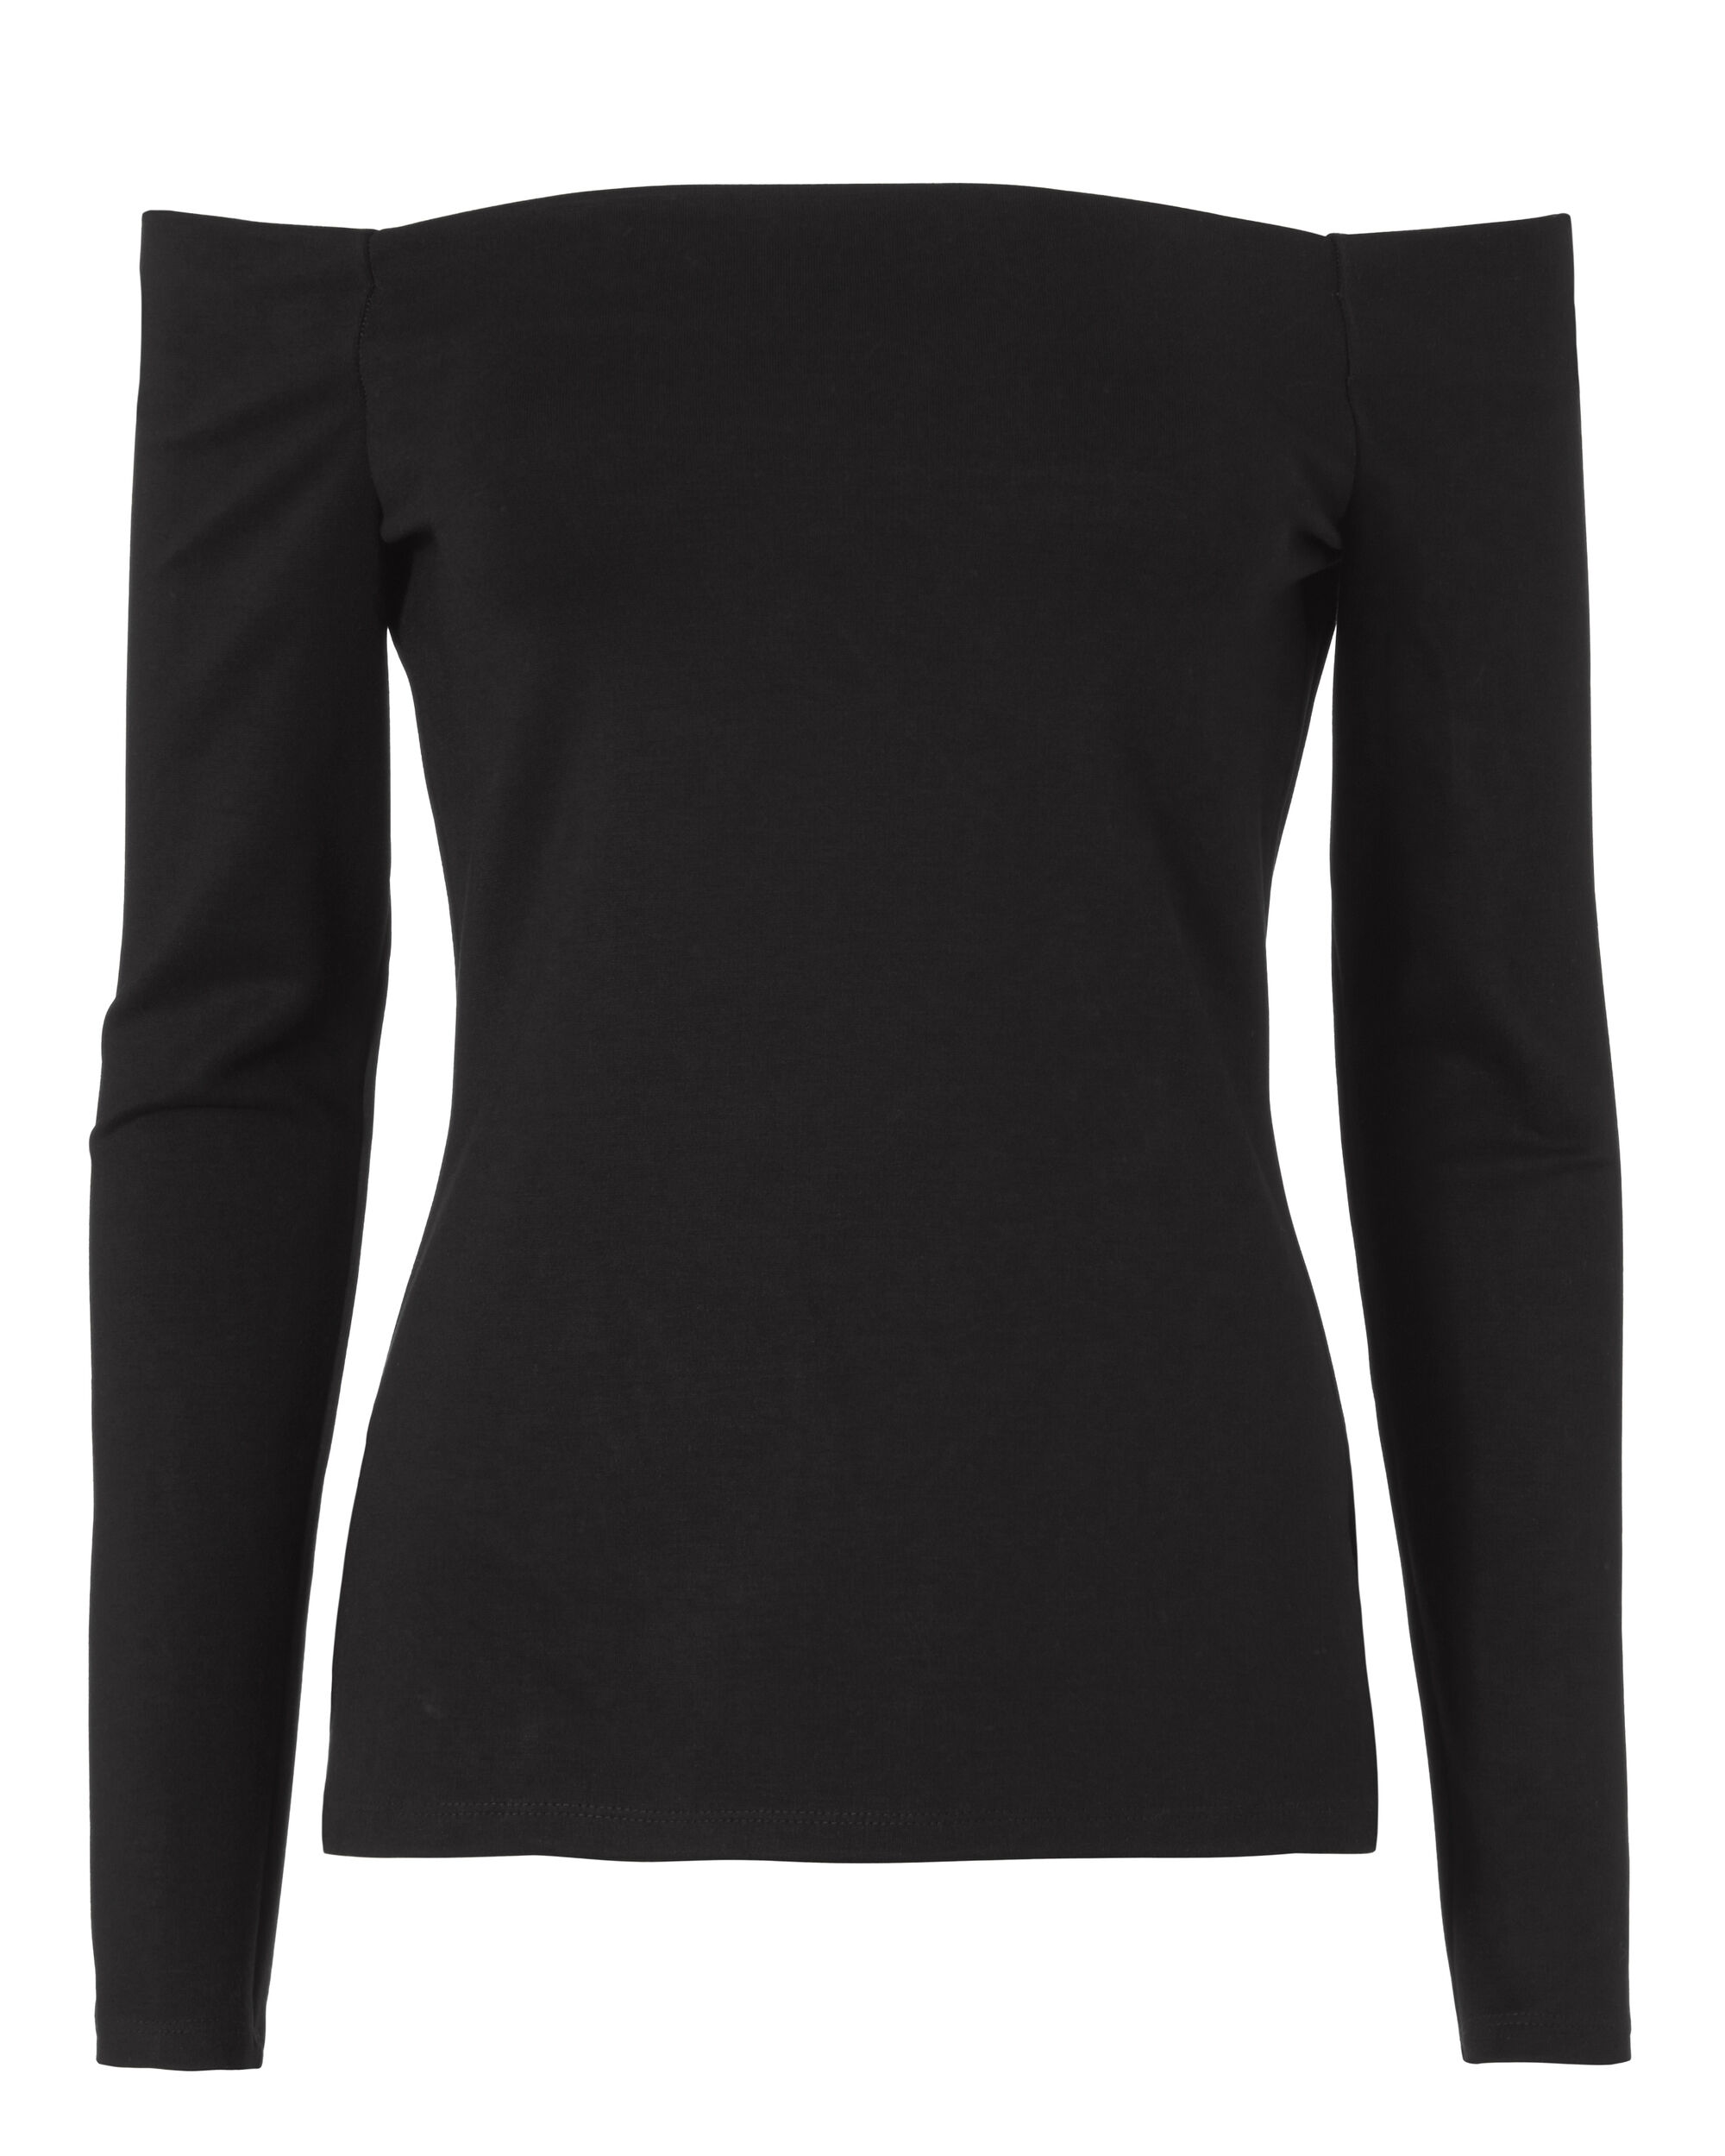 Cynthia Off-The-Shoulder Ponte Top, BLACK, hi-res